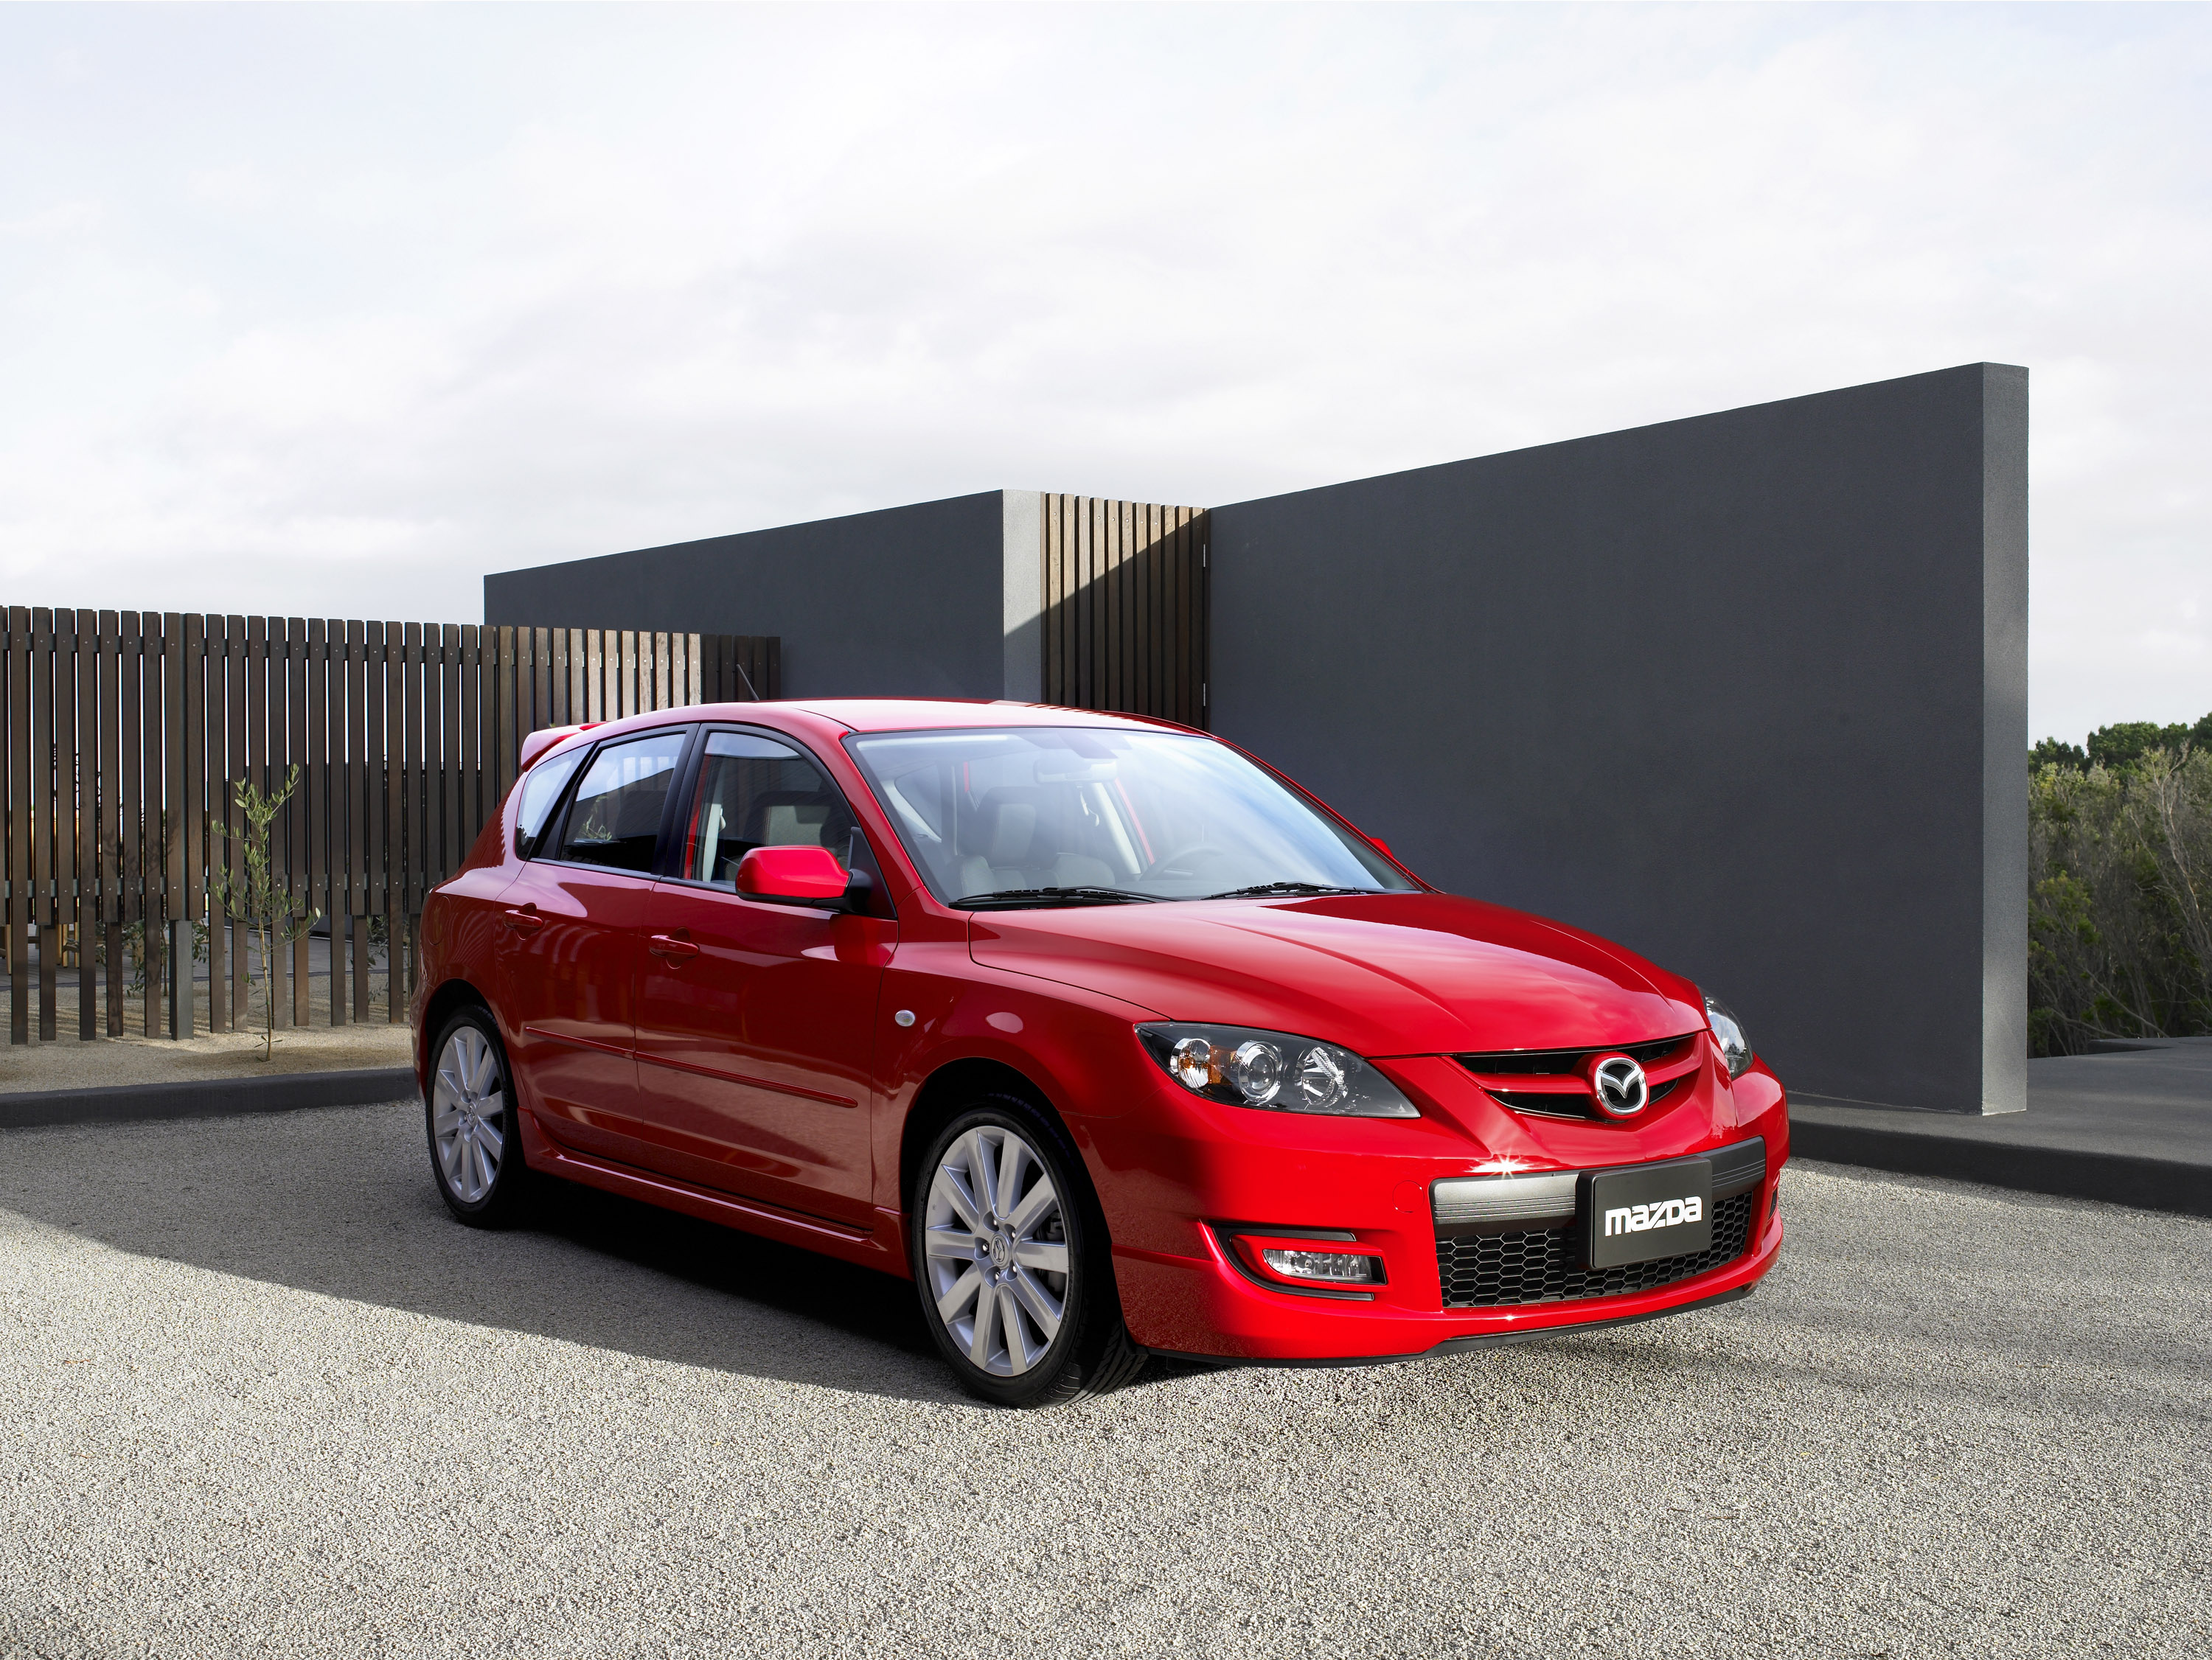 2007 Mazda MazdaSpeed3 | Top Speed. »